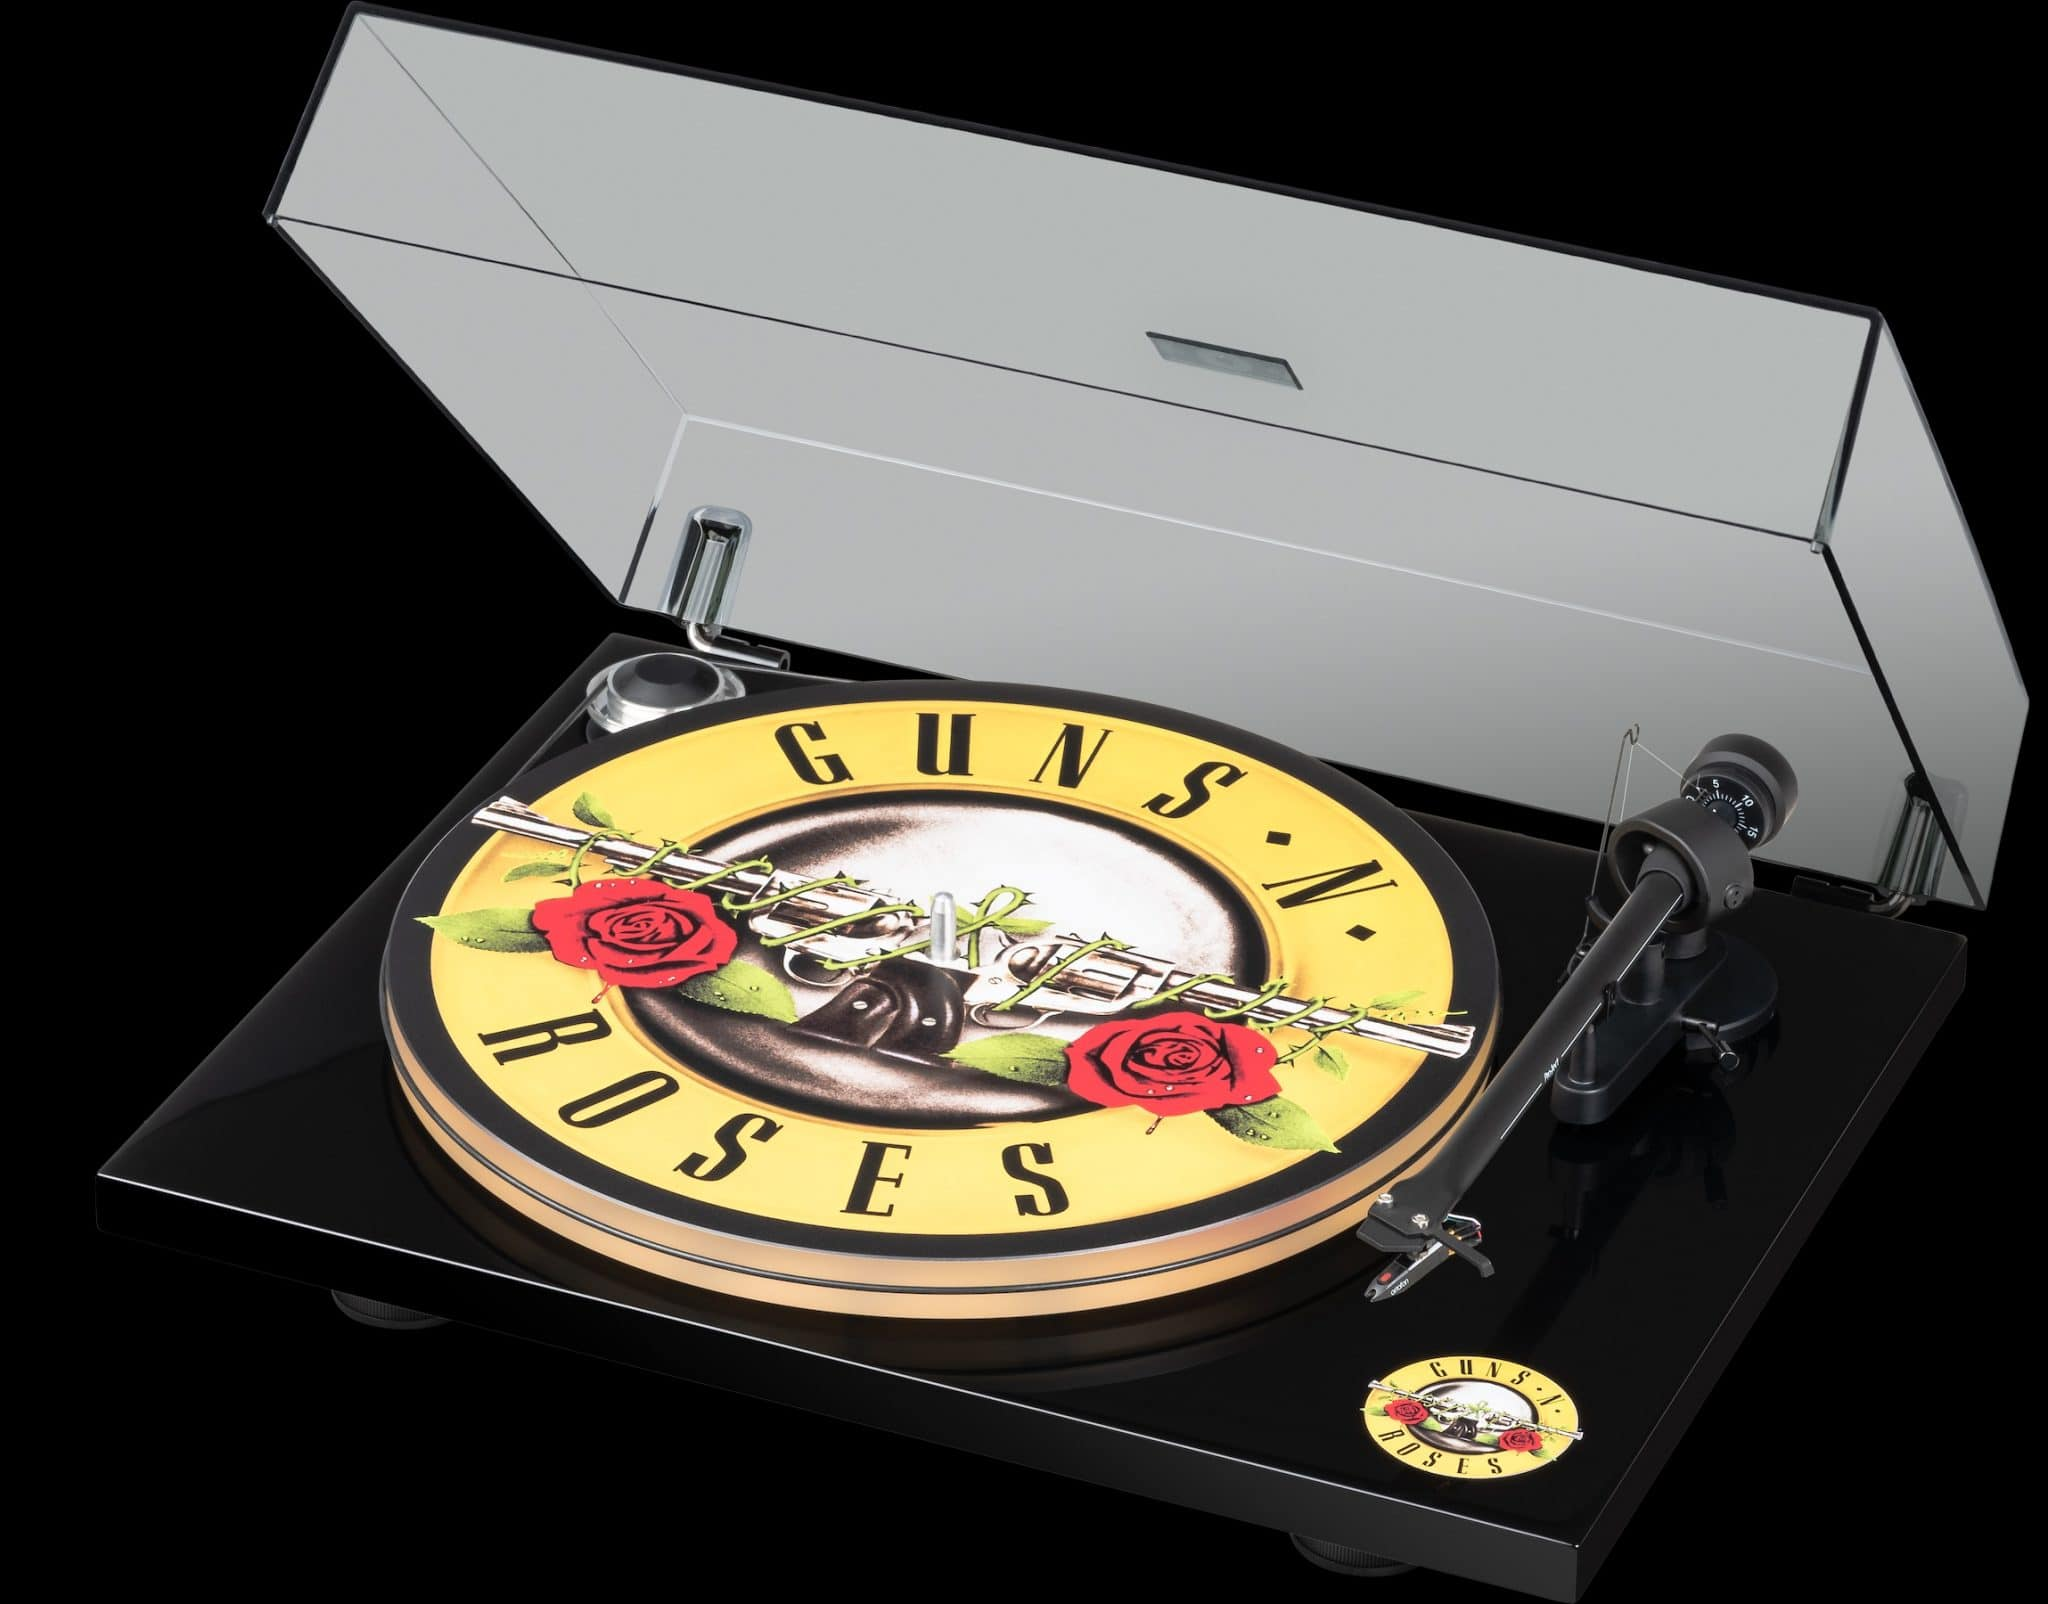 Guns N' Roses Turntable From Pro-Ject